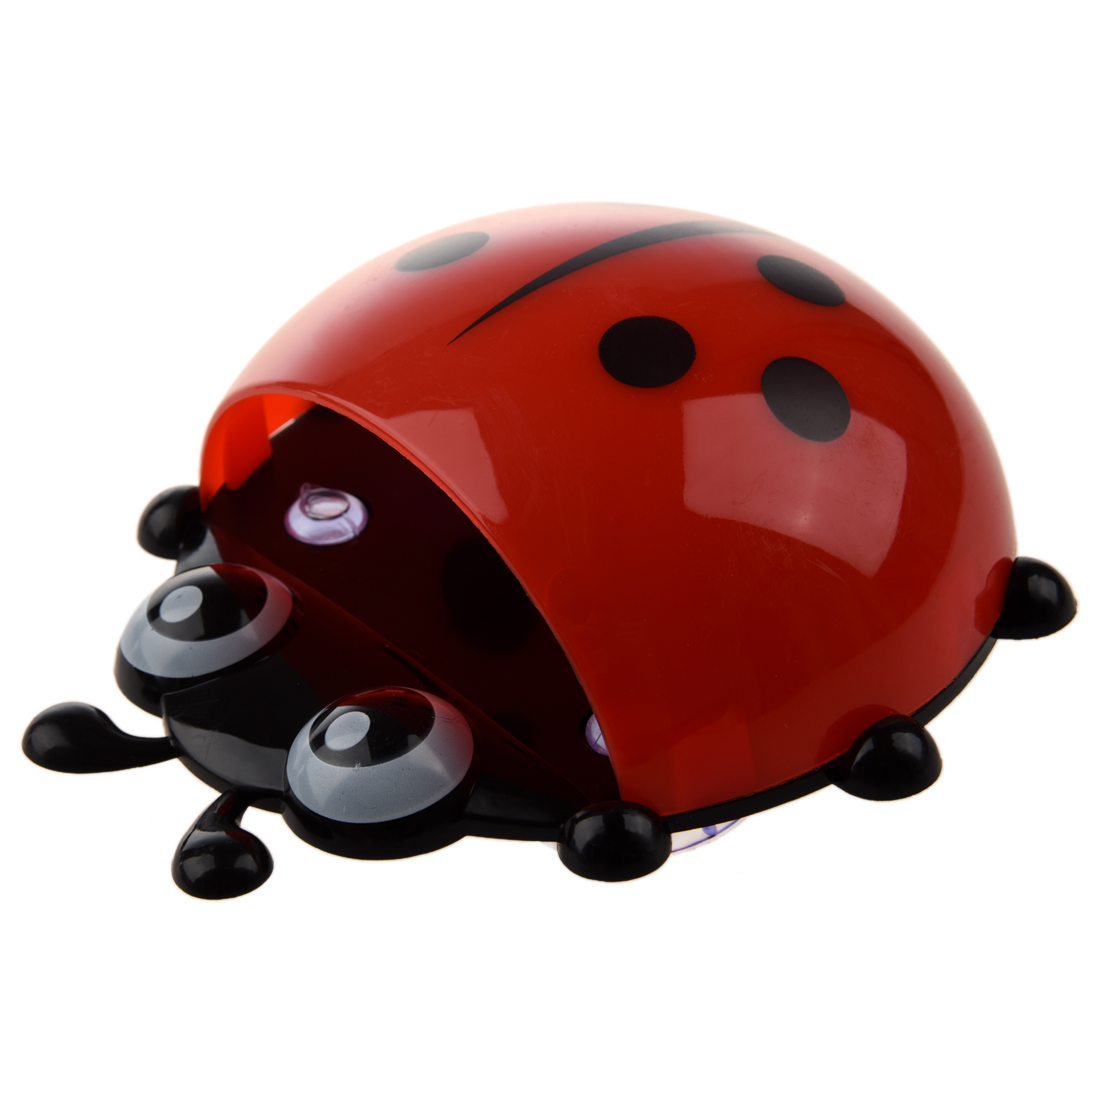 Convenient Bathroom Toothbrush Stuff Ladybug Wall Suction Holder-Red image